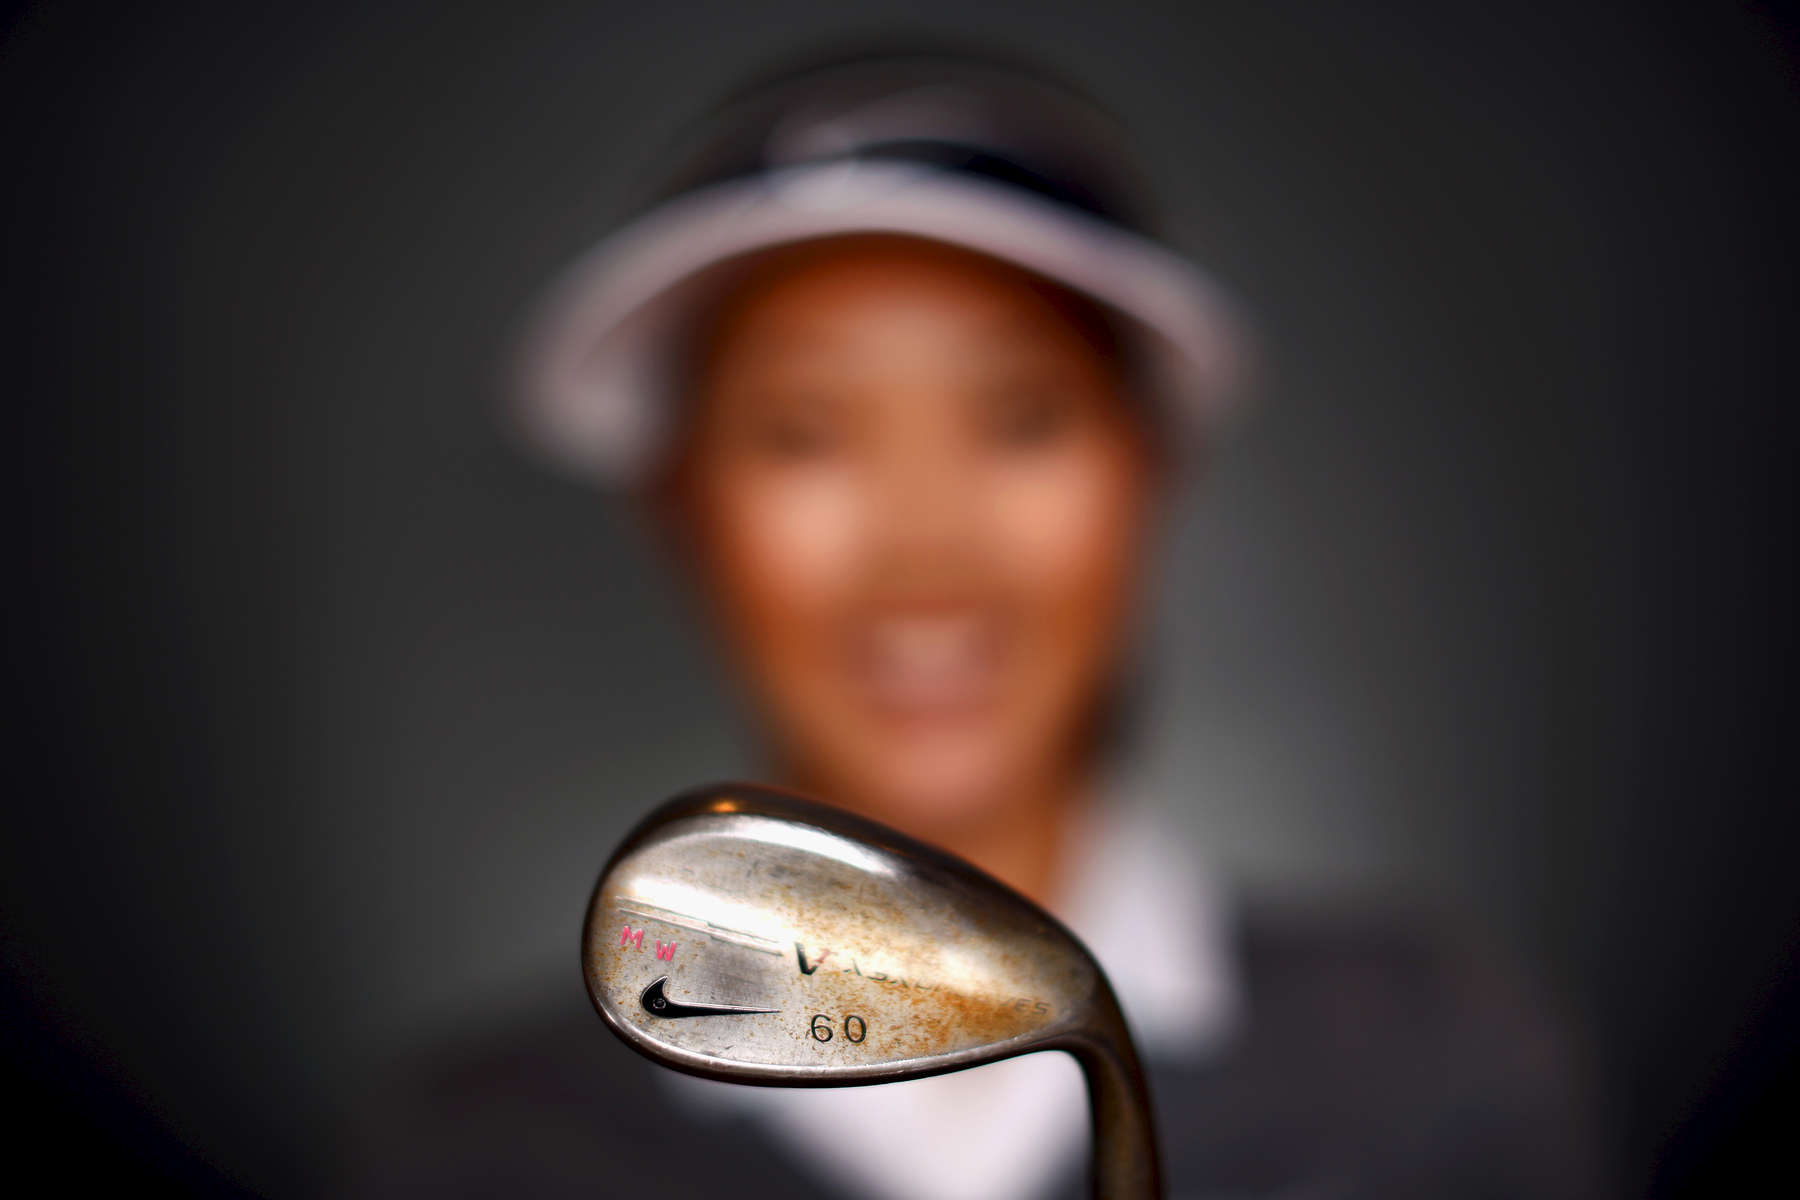 IRVING, TX - APRIL 29:  LPGA player Michelle Wie poses for a portrait prior to the start of the North Texas LPGA Shootout Presented by JTBC at the Las Colinas Country Club on April 29, 2014 in Irving, Texas.  (Photo by Tom Pennington/Getty Images)